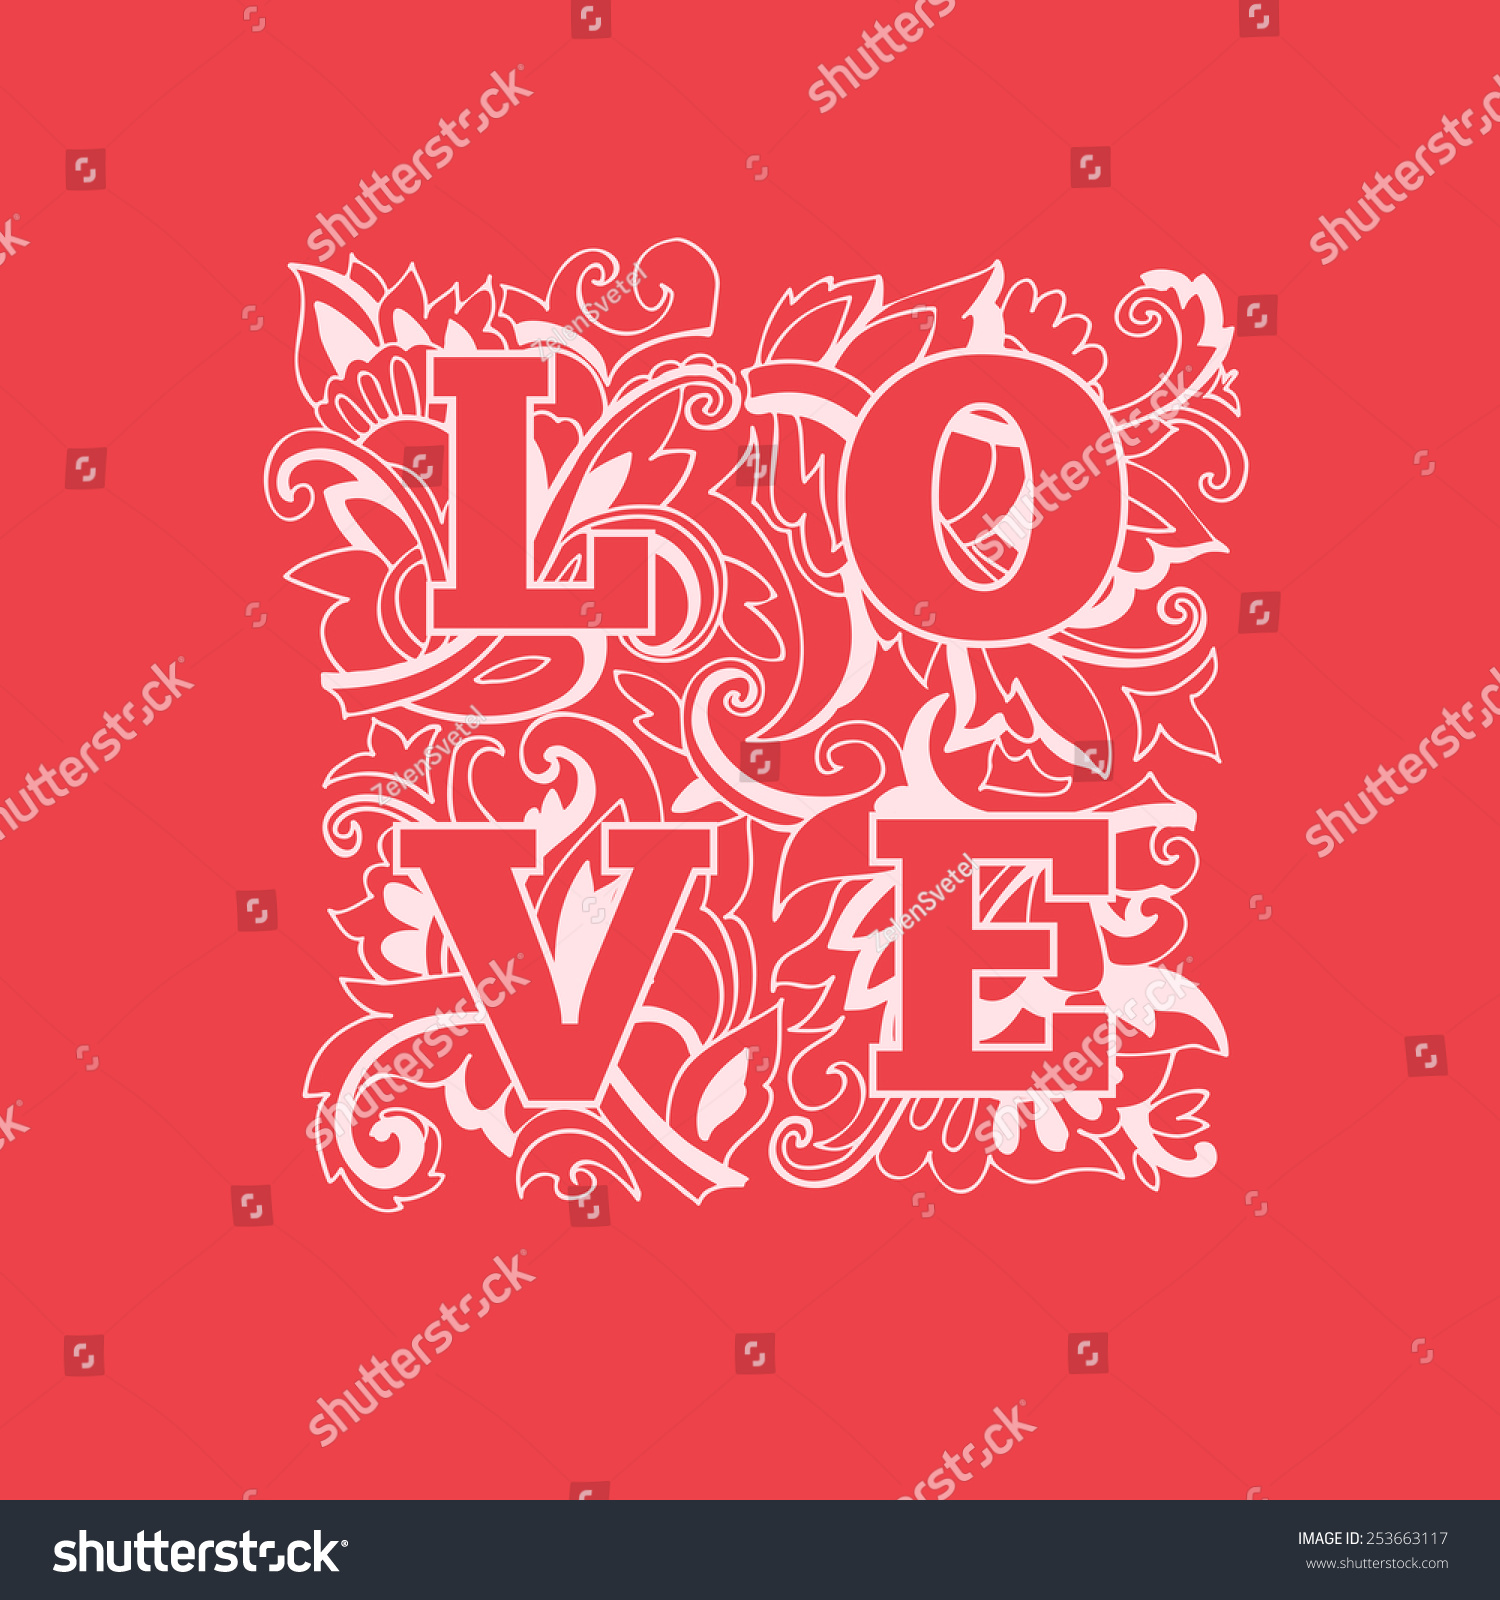 Love word on patterned background. Romantic decorative postcard ...